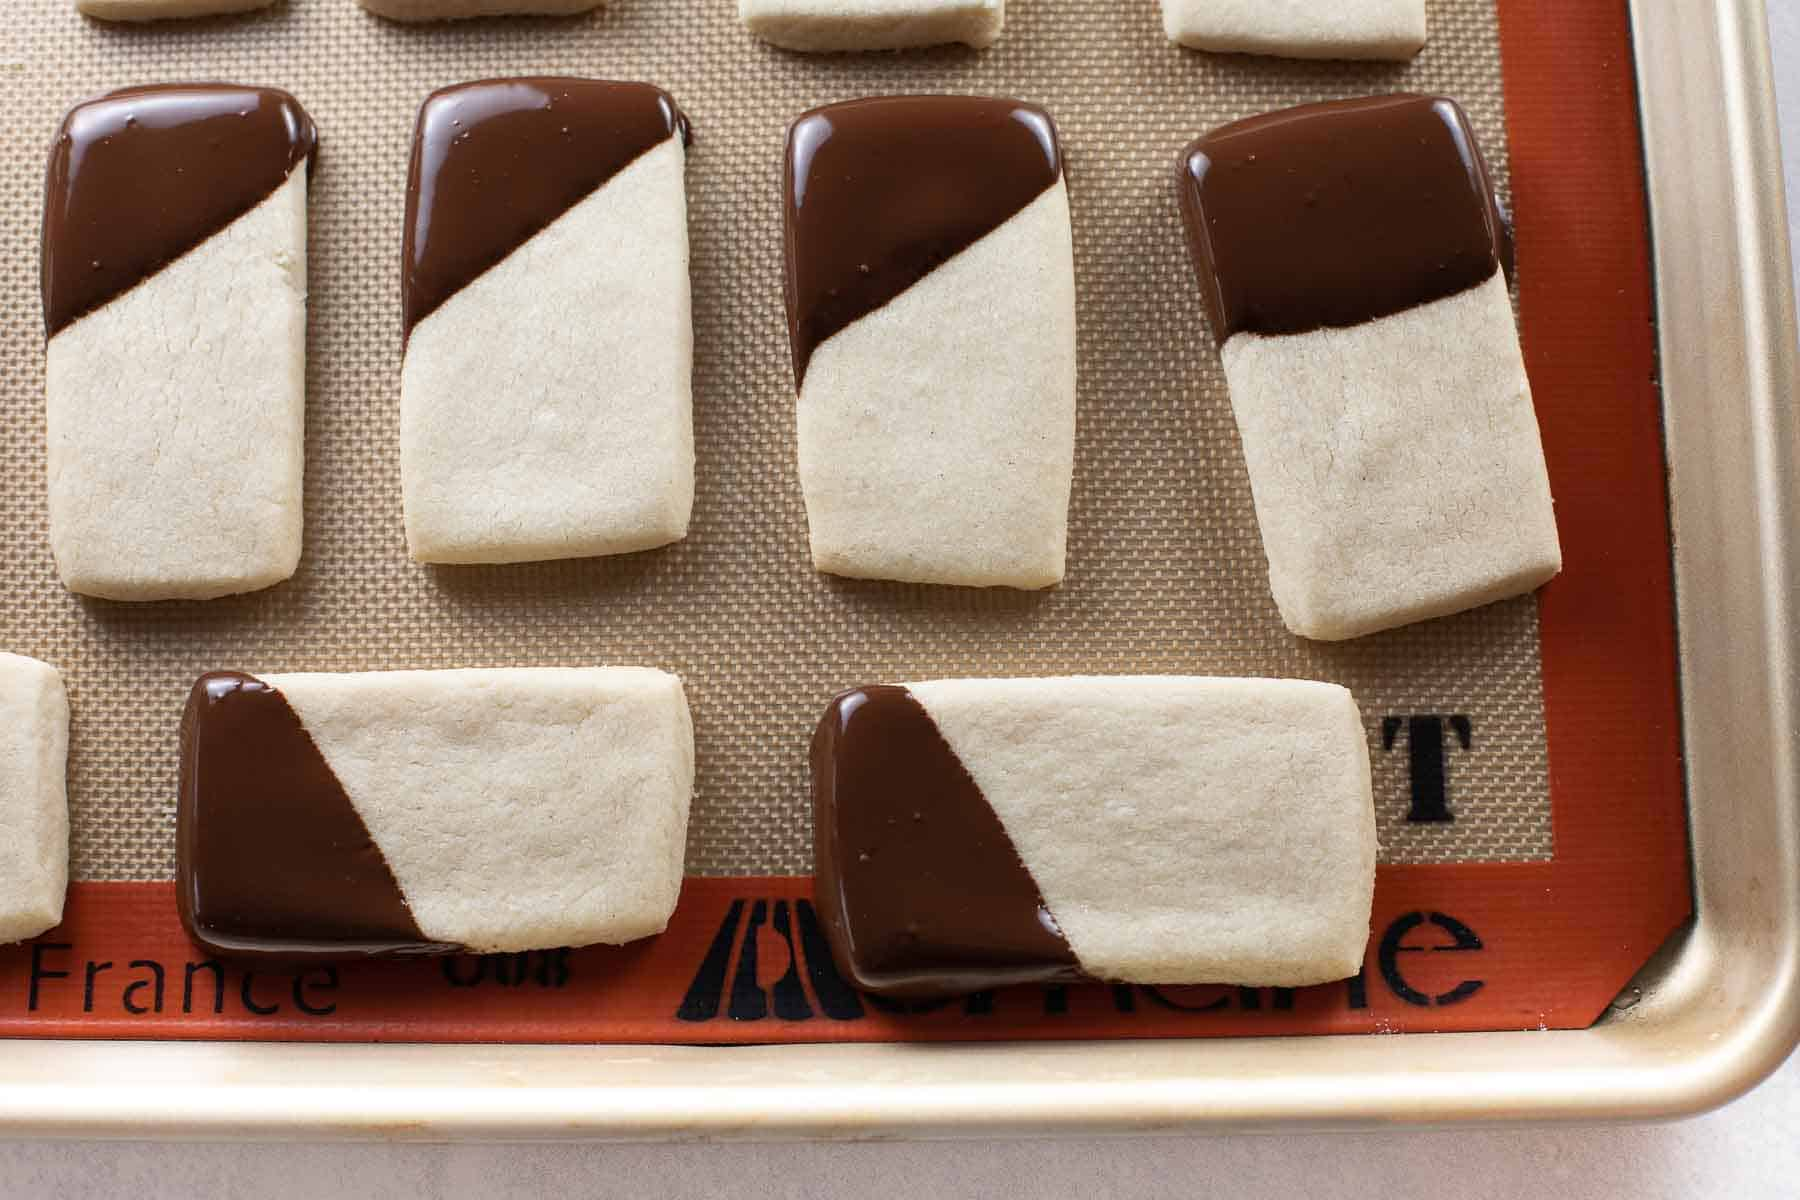 shortbread cookies dipped in chocolate on baking sheet